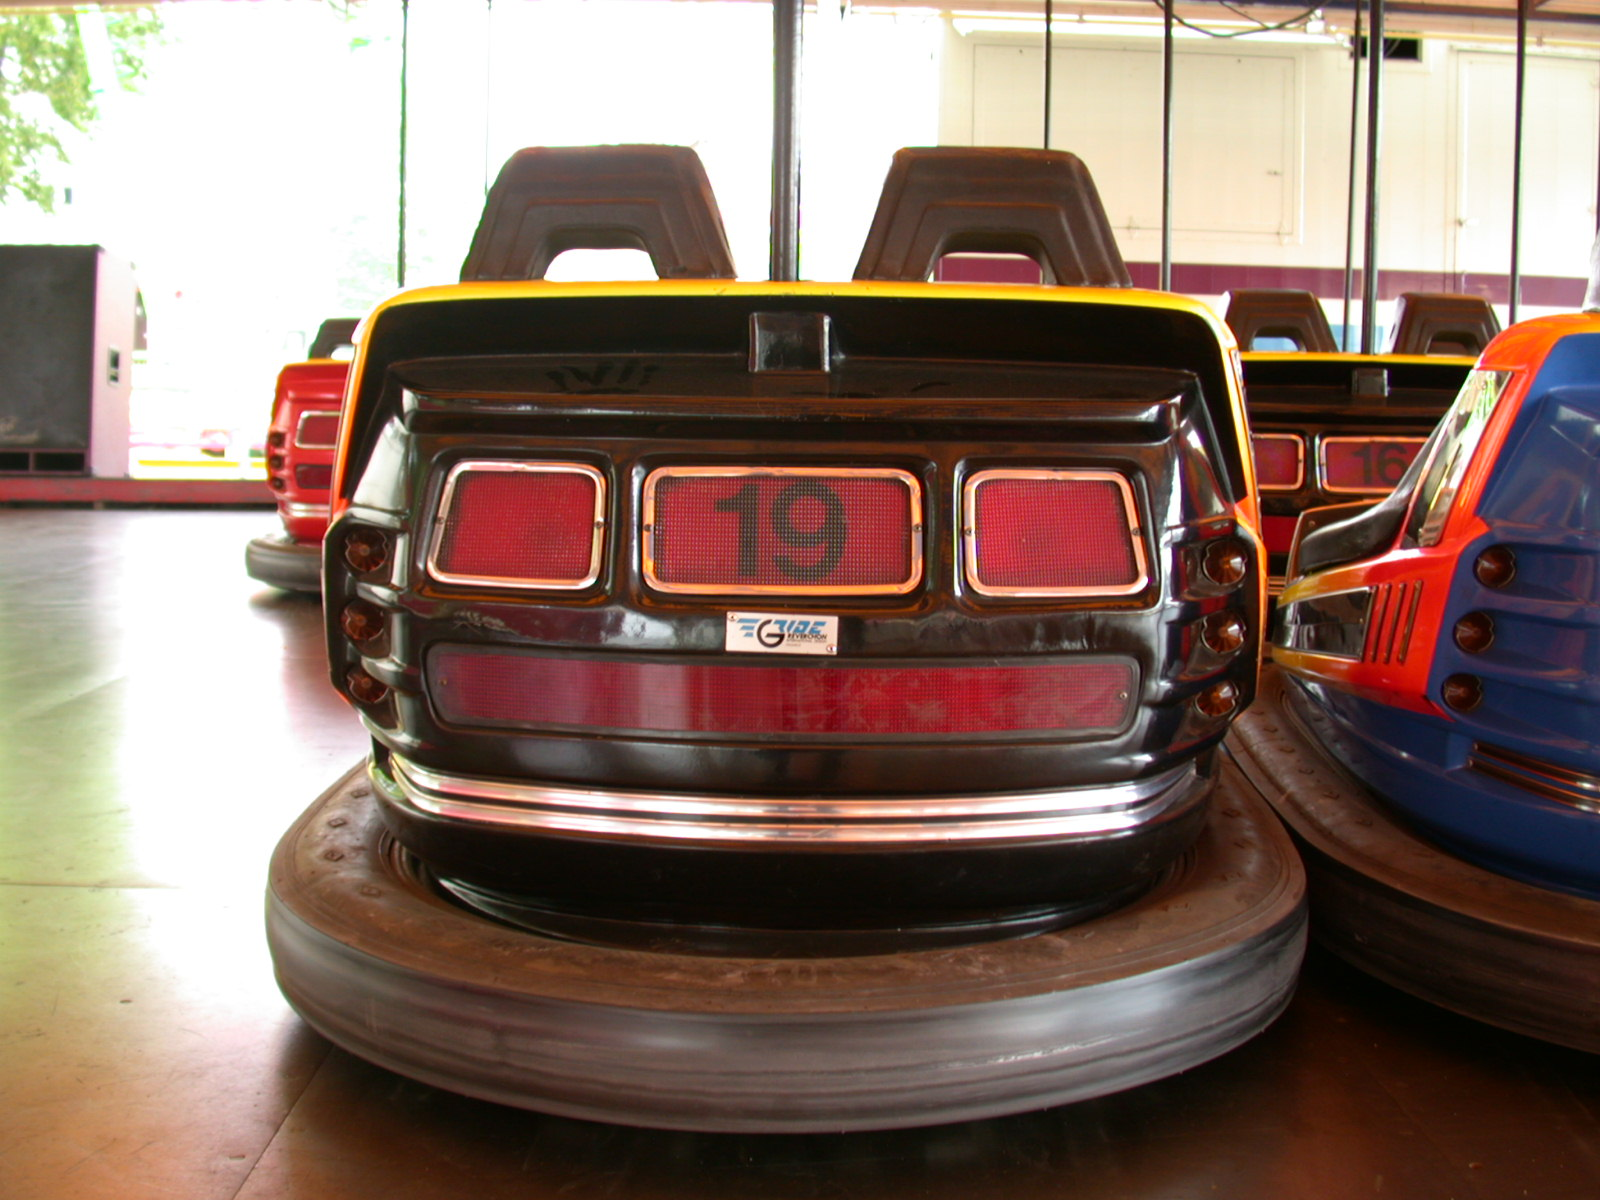 bumpercar bumper car fair 19 back cars bumpercars rubber shiny waxed floor